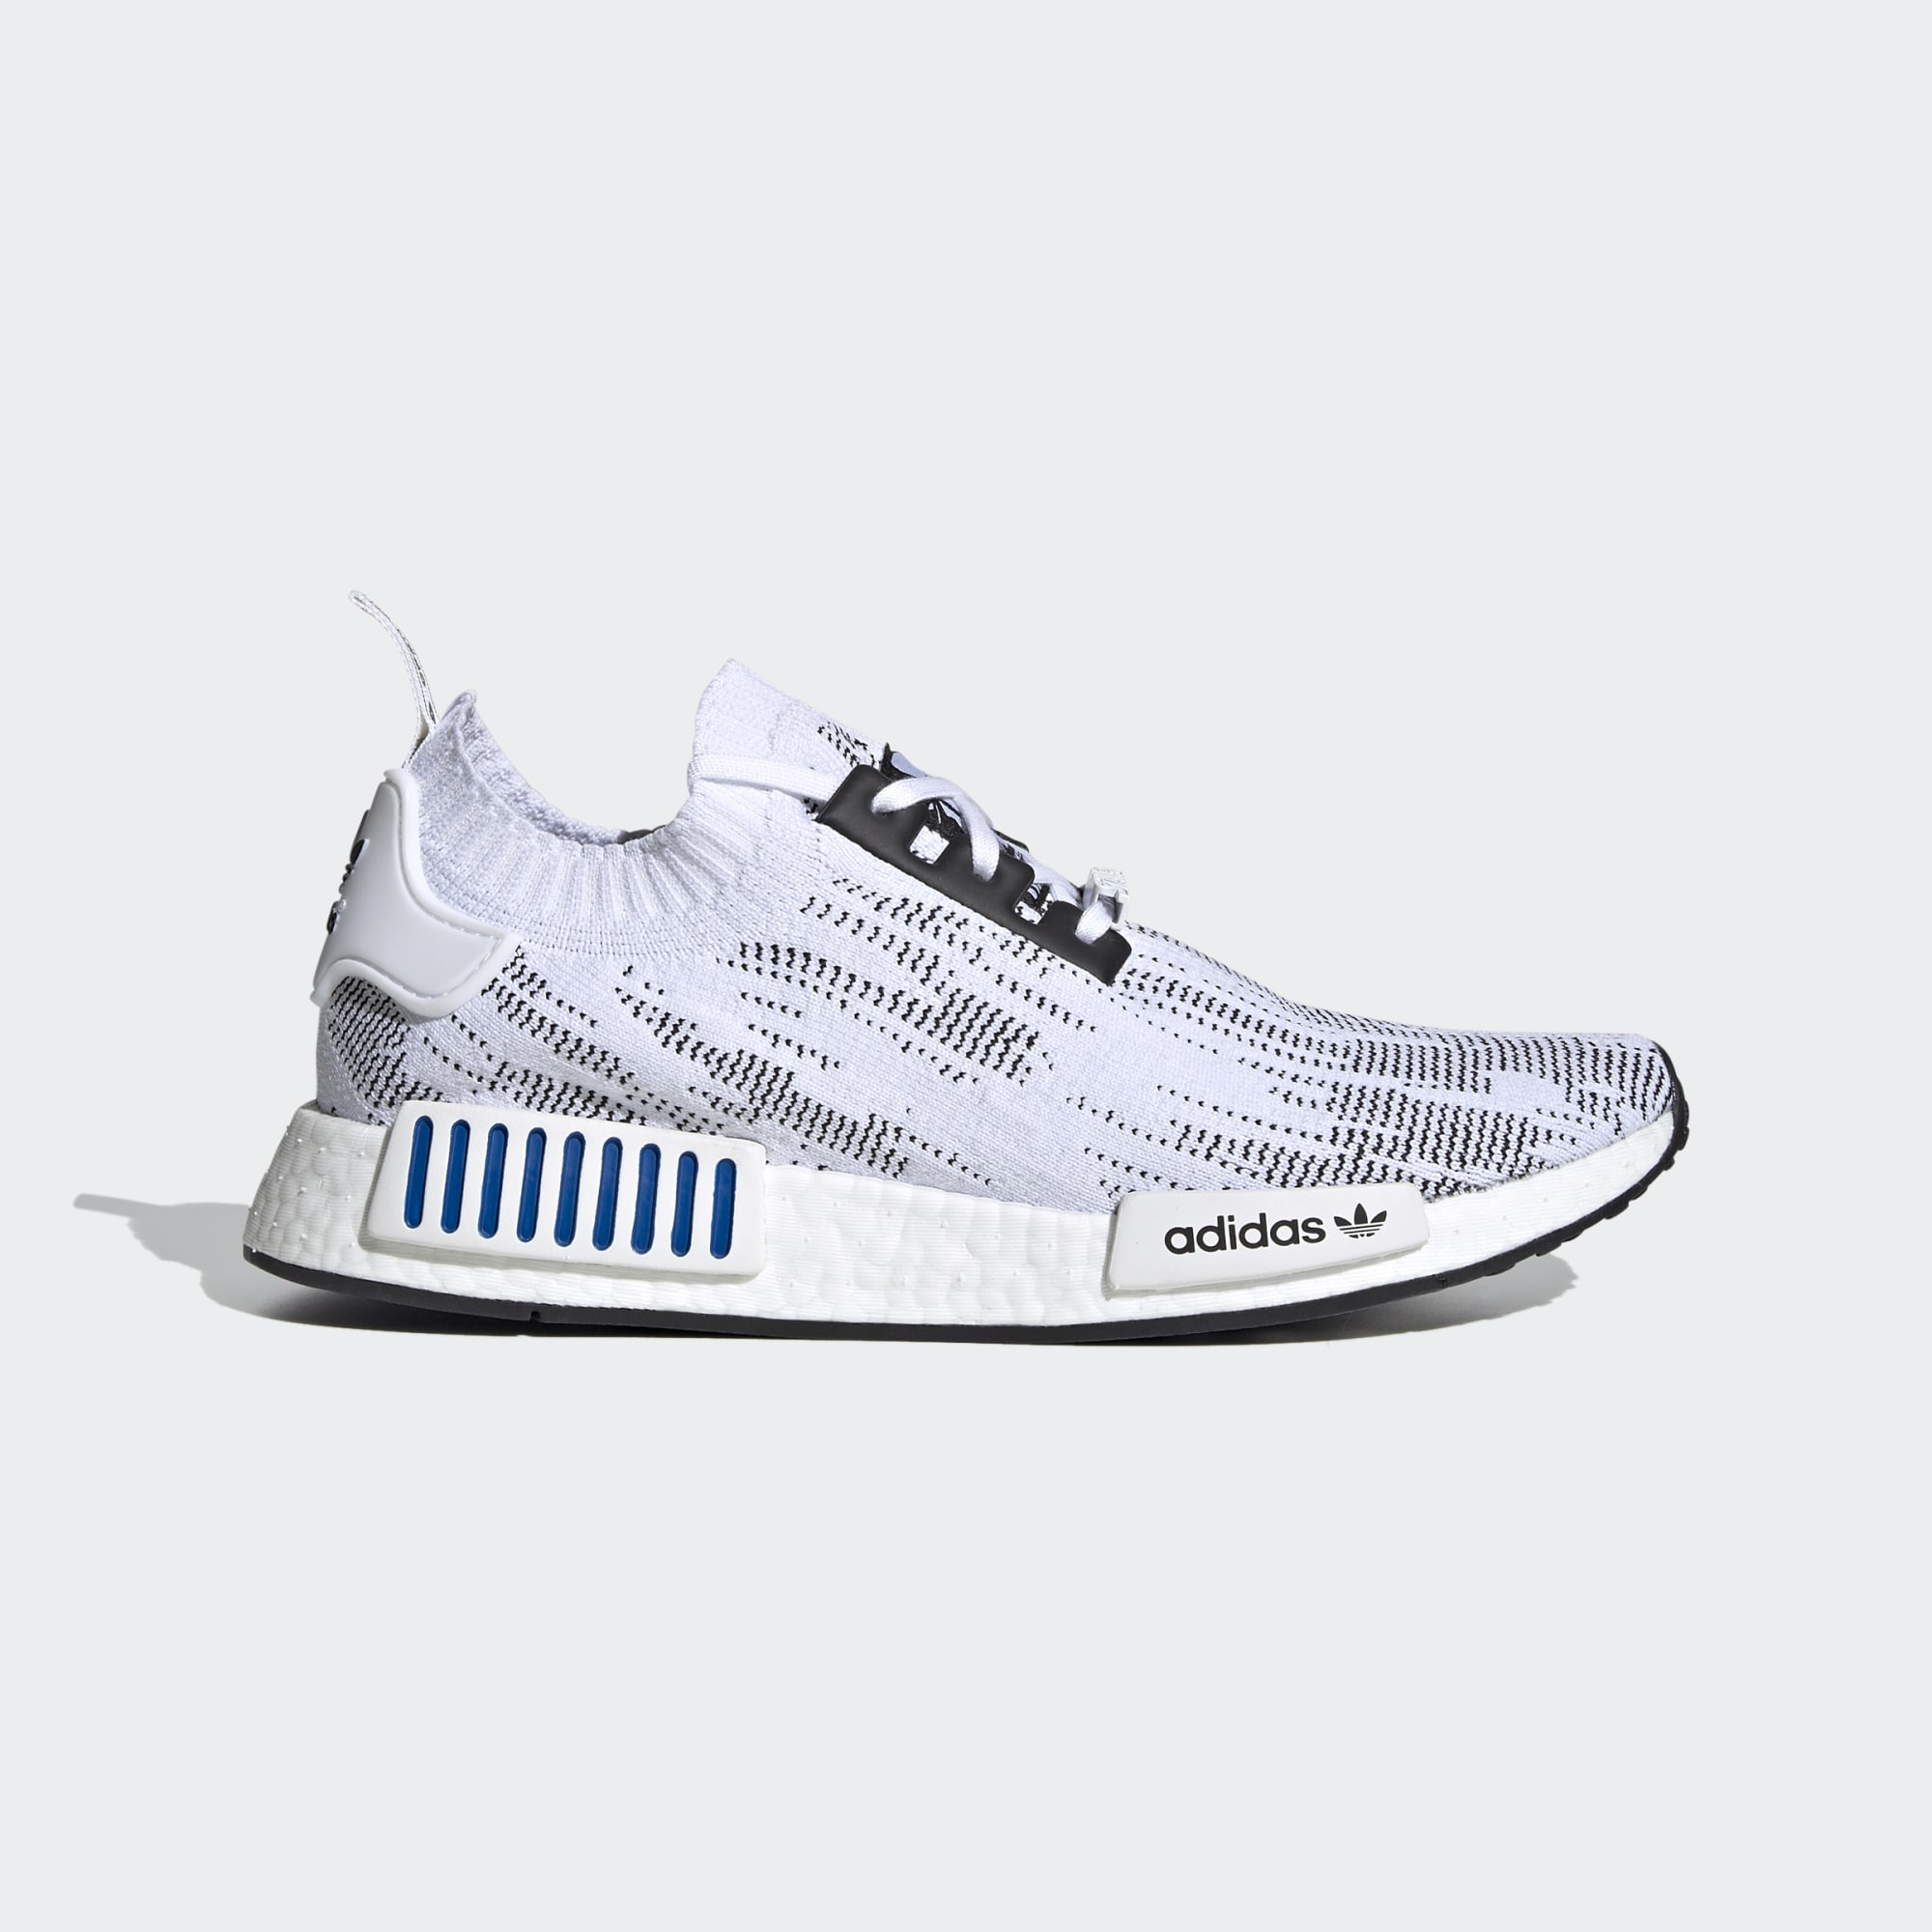 Unisex NMD R1 Star wars white/black